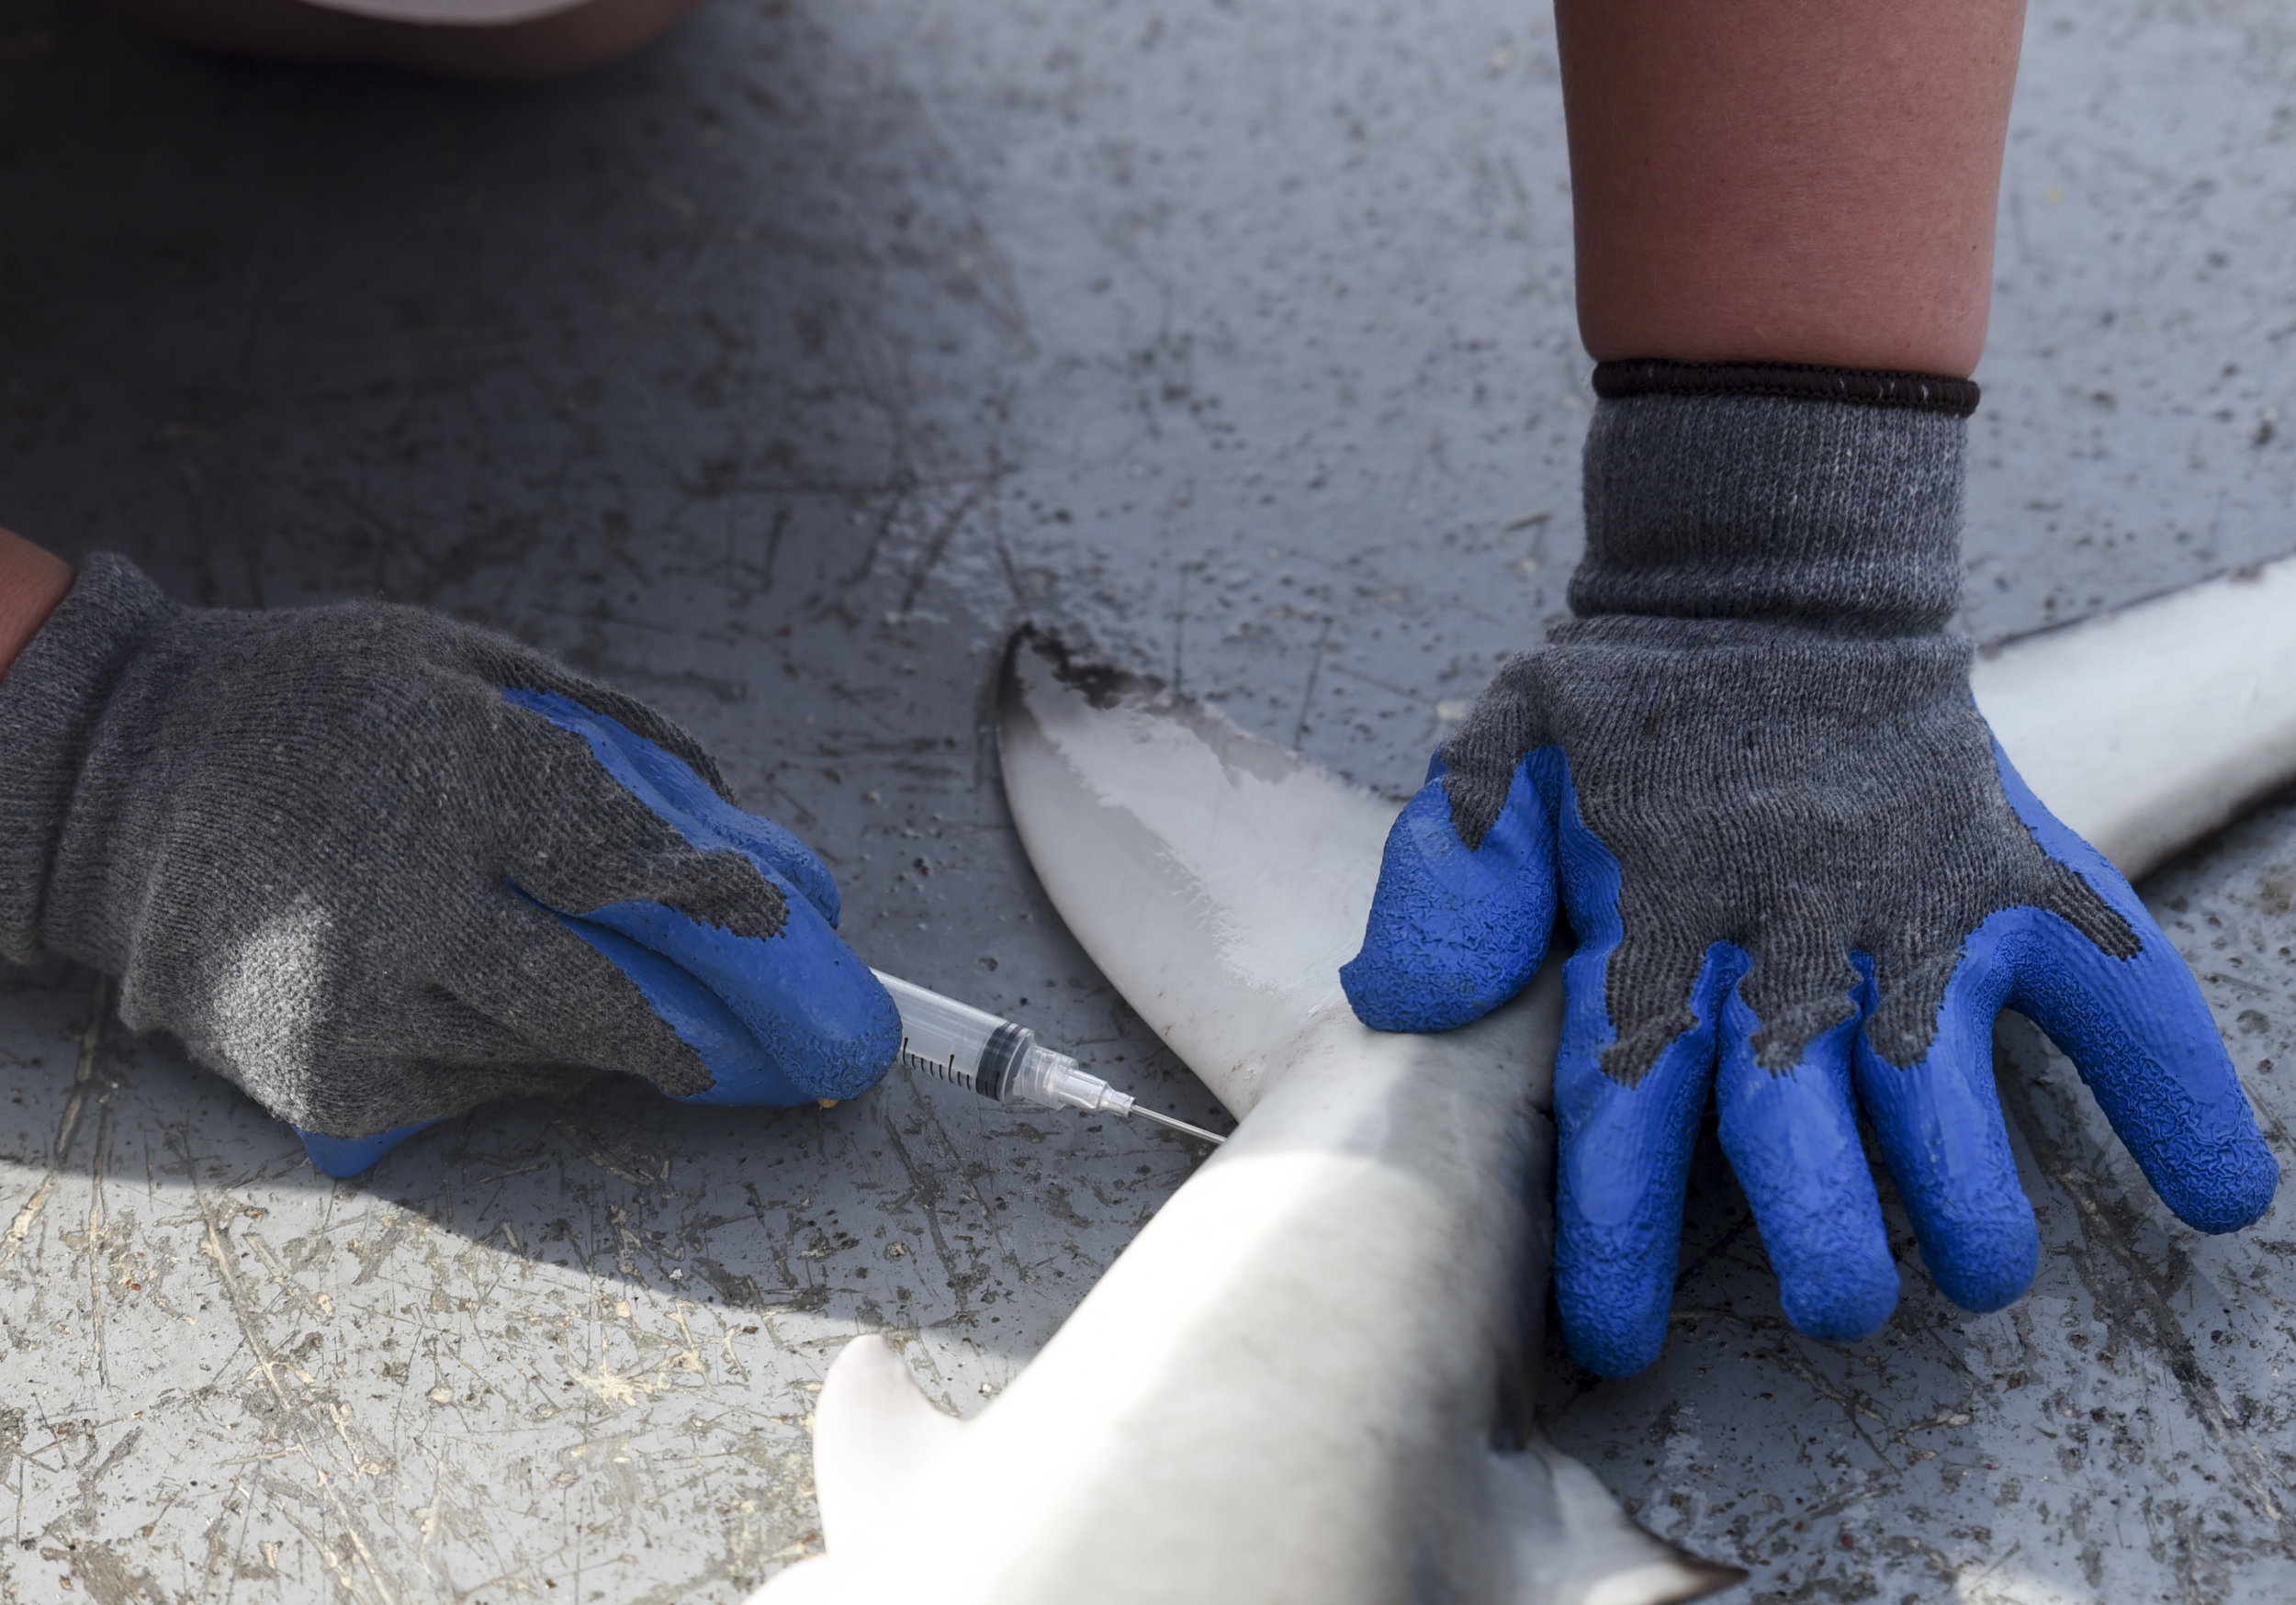 Samantha Ehnert, a 27-year-old student at the University of North Florida, uses a syringe to draw blood from a Blacktip shark.Ehnert said the blood would allow her to study the level of testosterone in the shark's body.